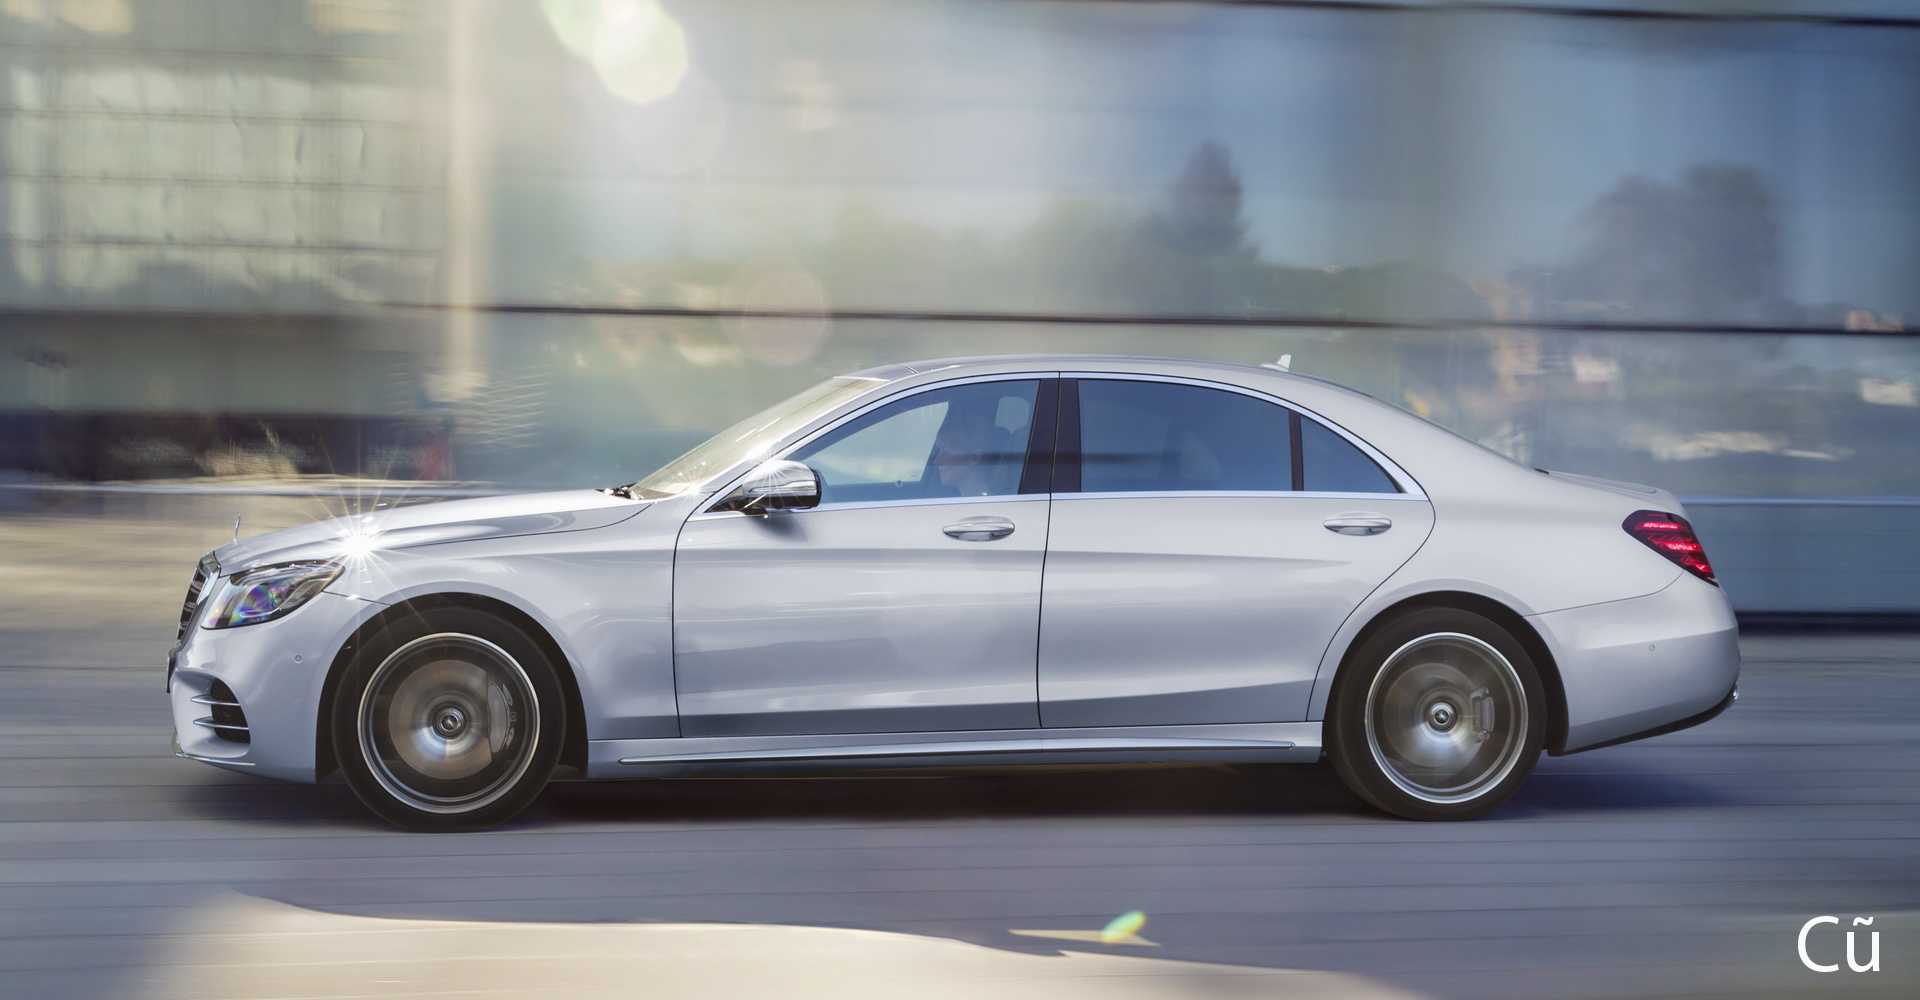 Mercedes-Benz S-Class 2021 co dep hon the he truoc? anh 5